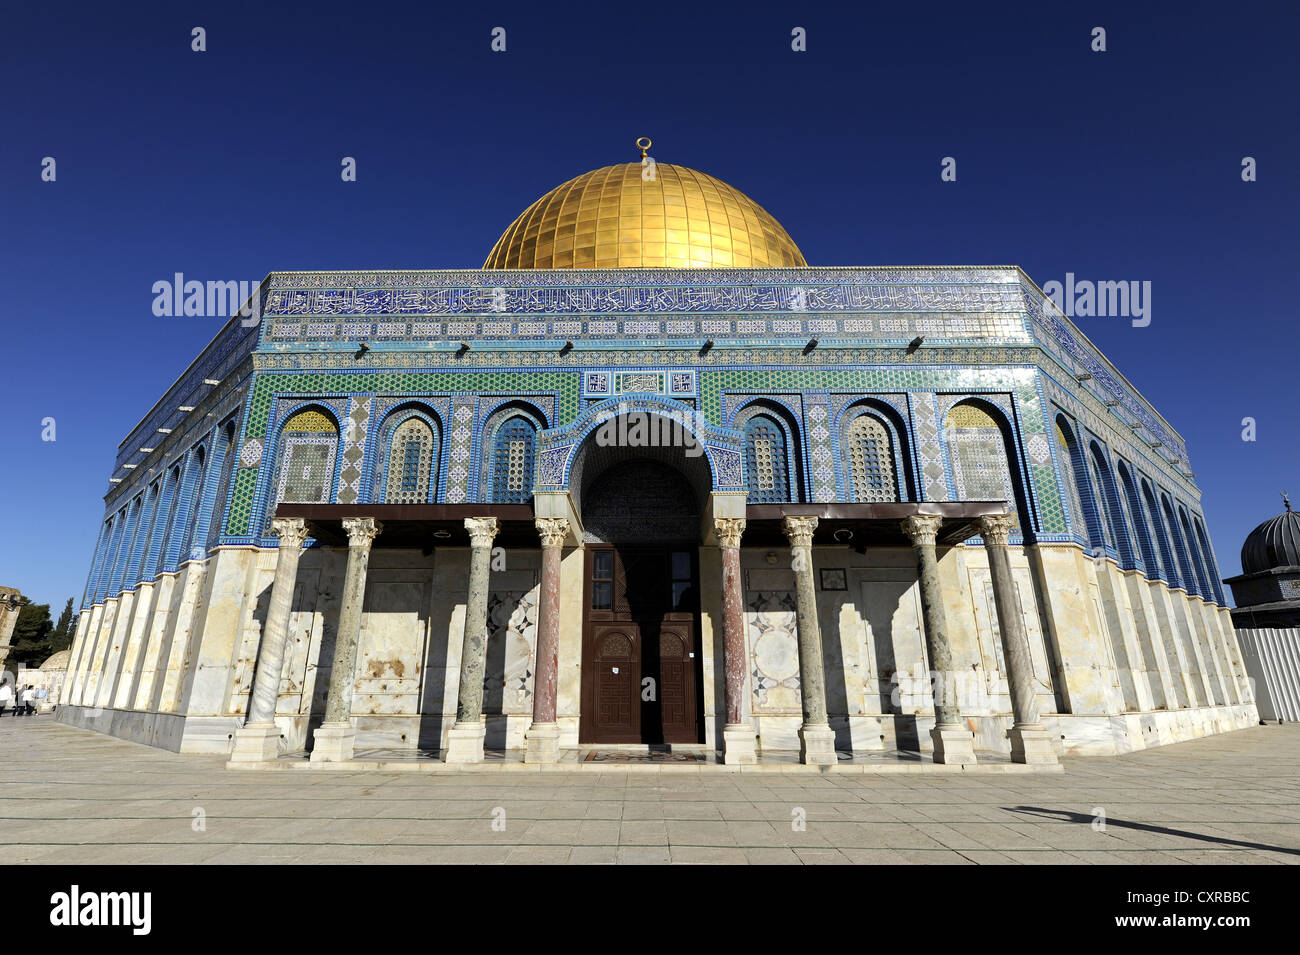 Dome of the Rock, Temple Mount, Old City, Jerusalem, Israel, Middle East, Asia Minor, Asia - Stock Image